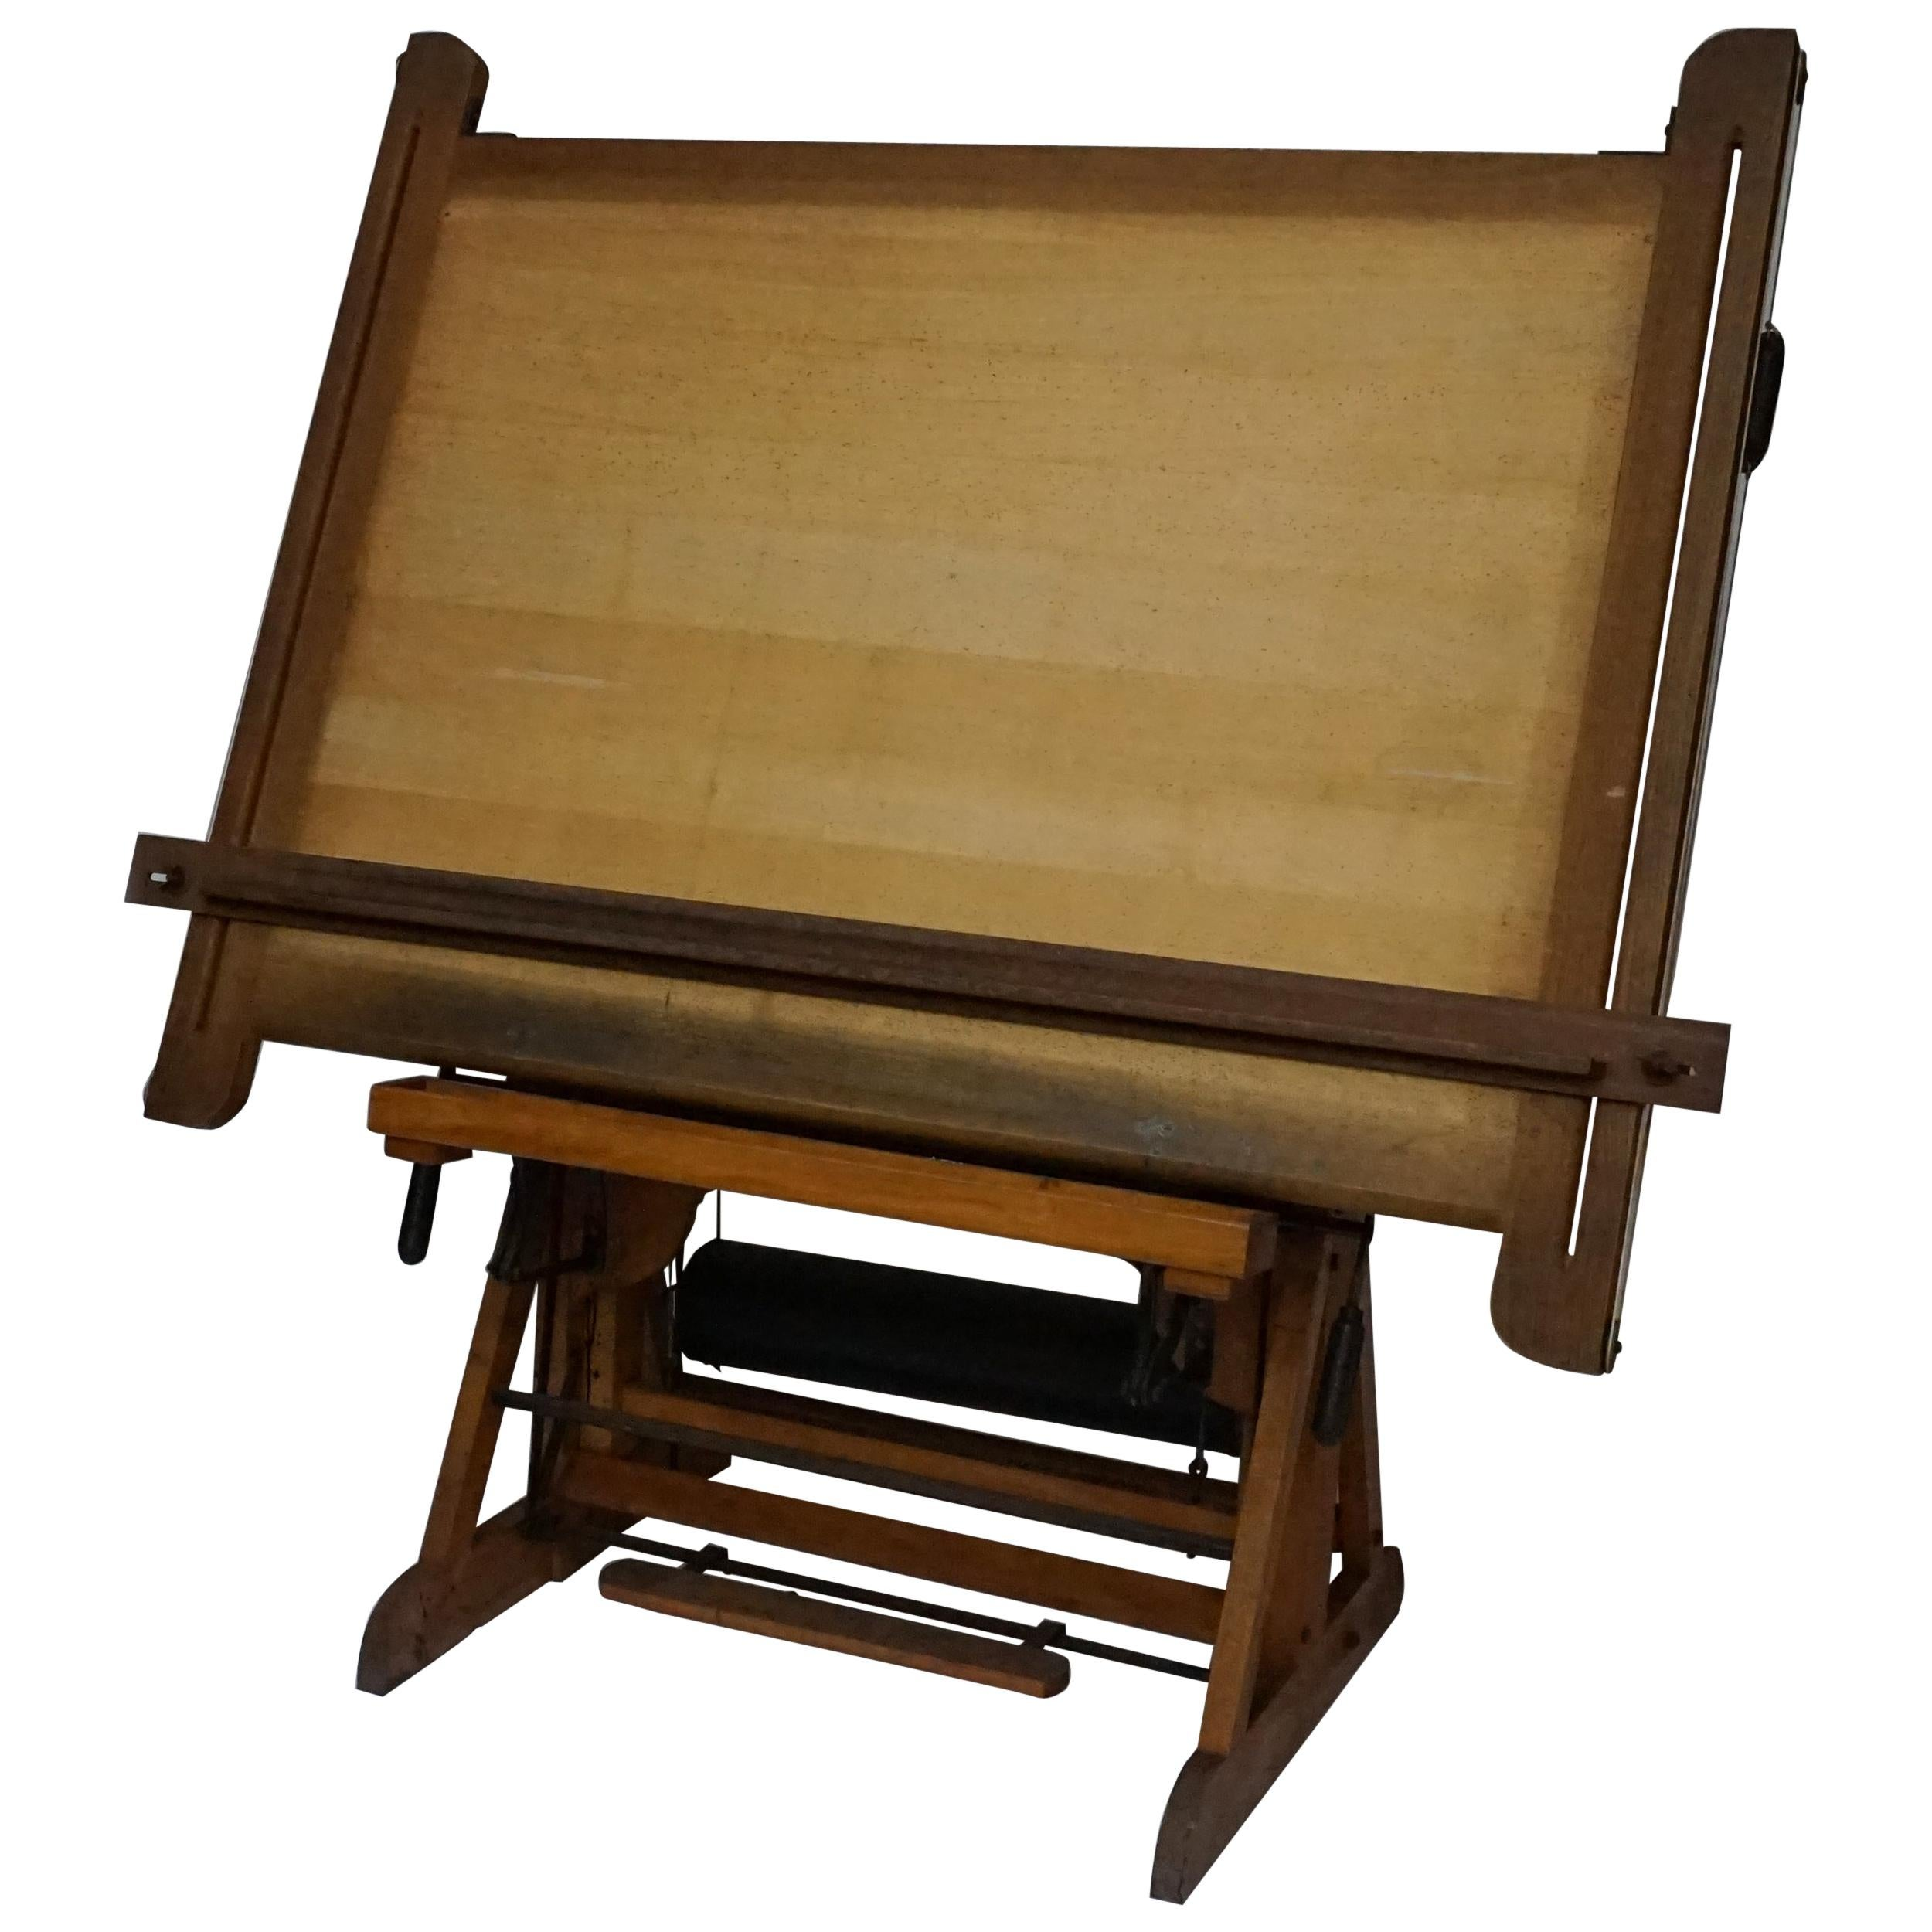 Early 20th Century French Wooden Tilting Architect's Drafting or Drawing Table